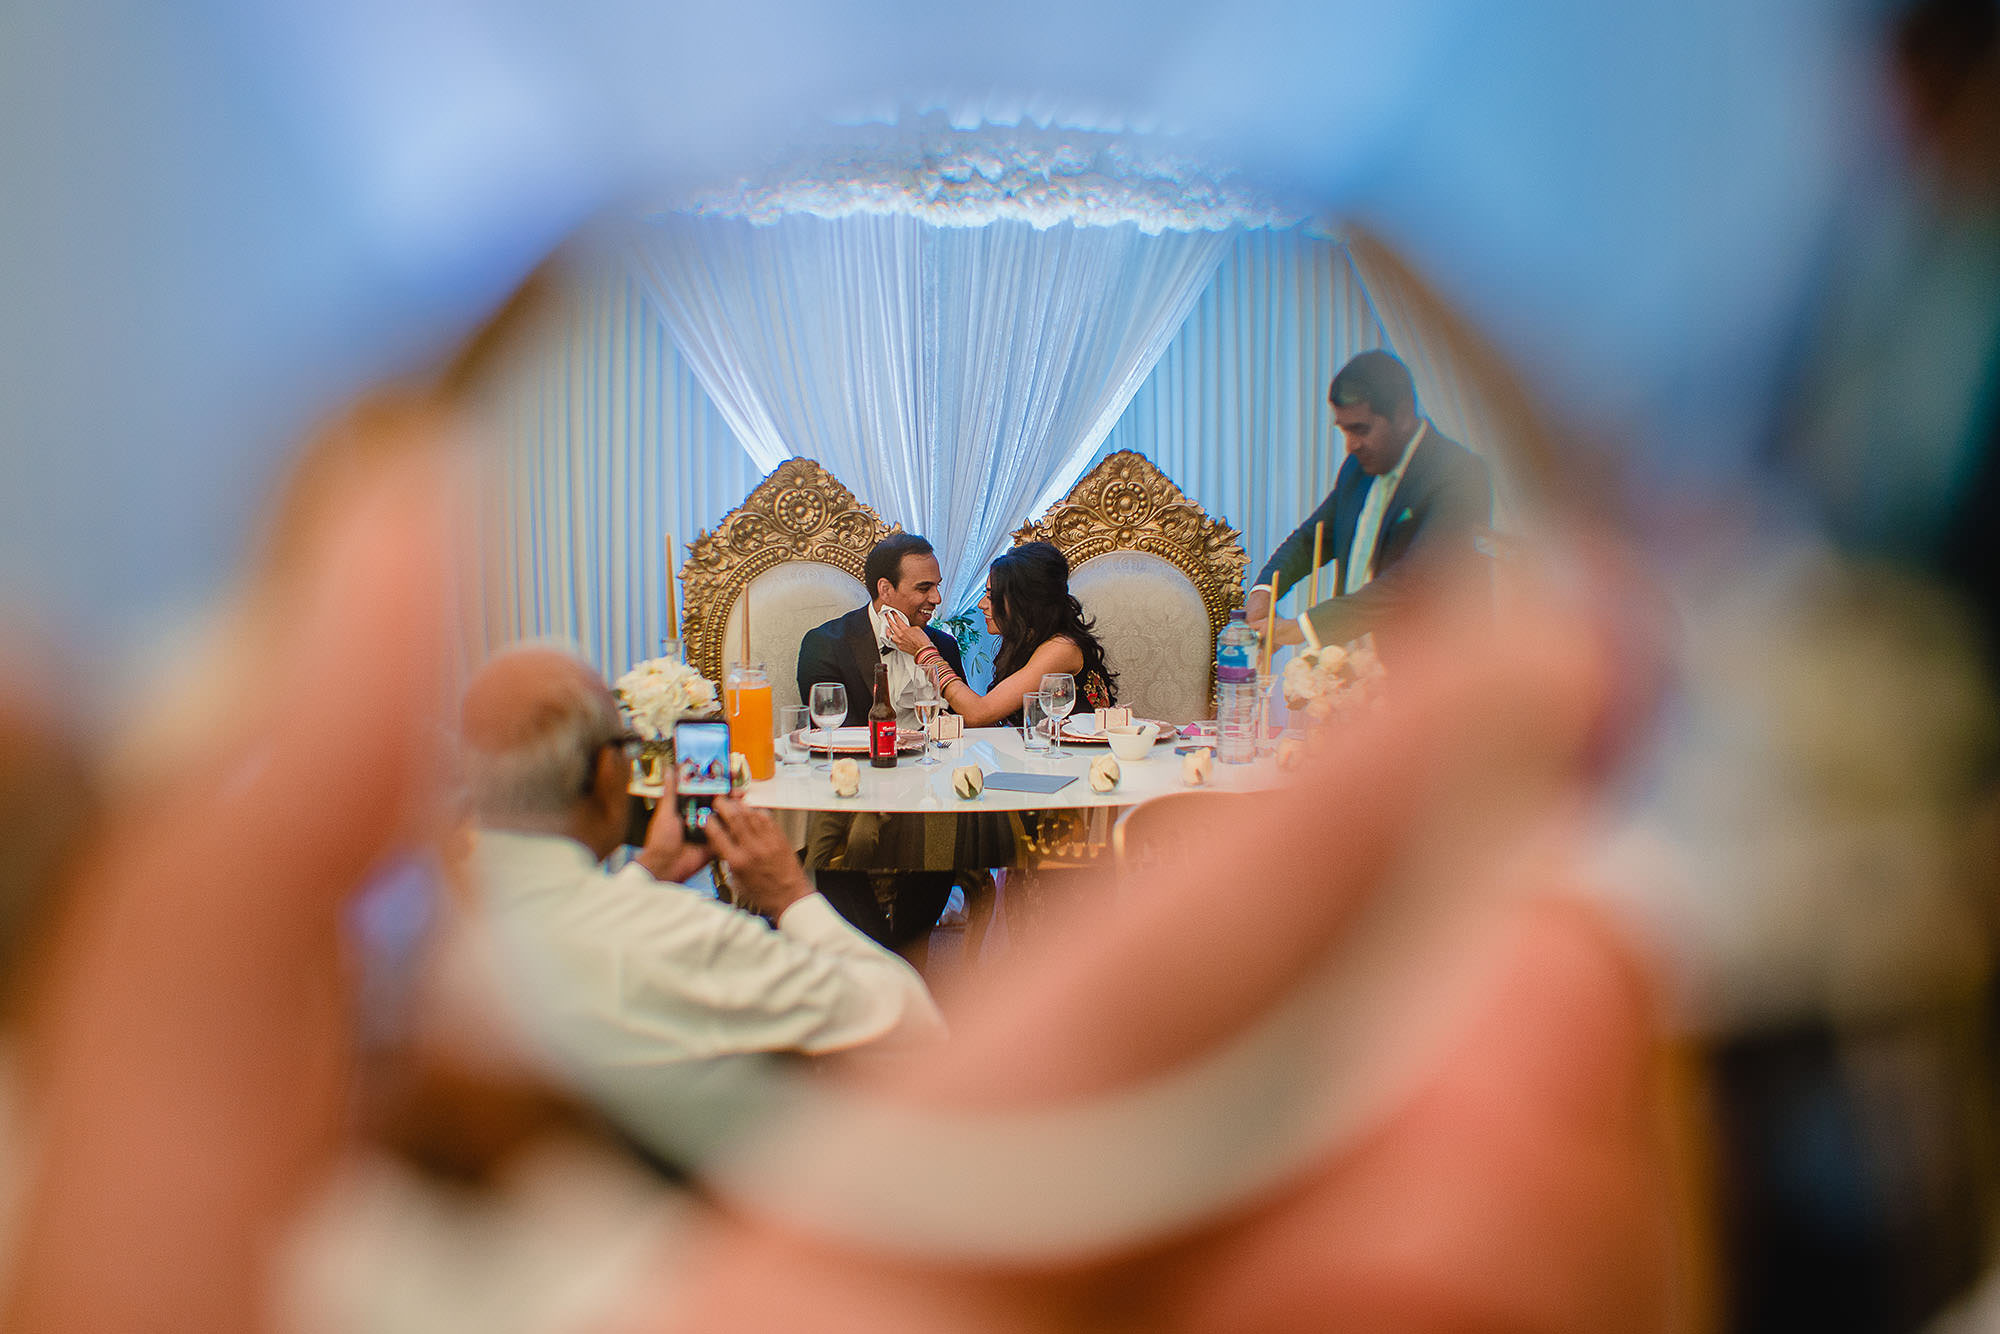 creative bride and groom at their head table